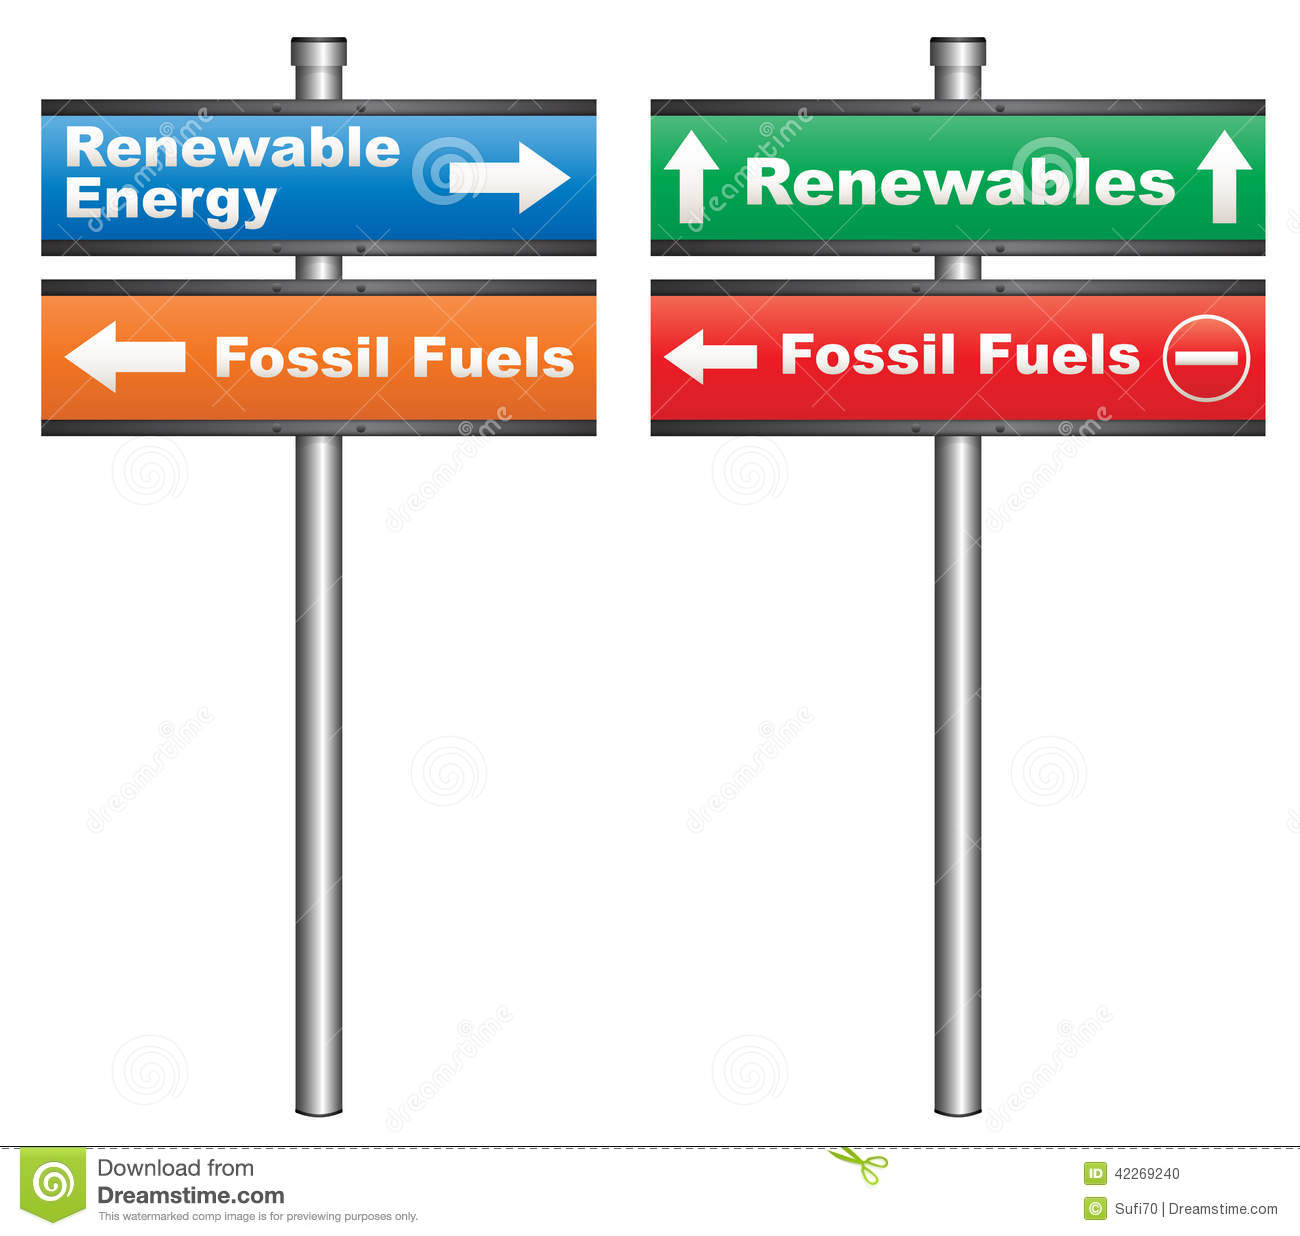 renewable energy yes or no Renewable energy seems unattainable sometimes and like magic other times, but the reality is quite different from solar and wind power to geothermal, biomass and hydroelectric energy, here are six benefits of alternative energy sources that we really need to consider.